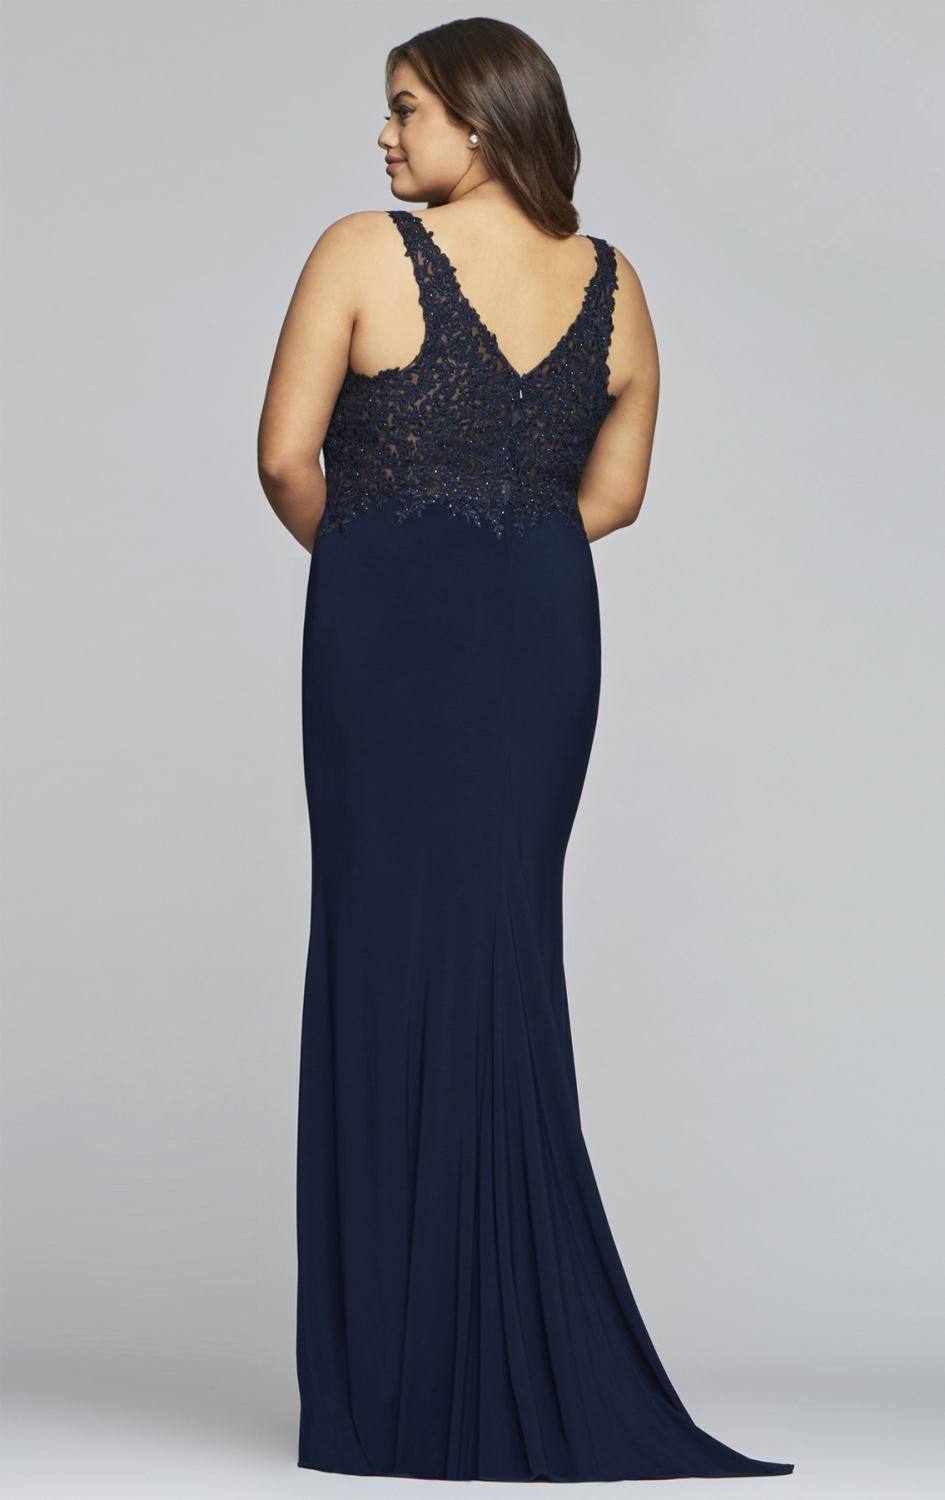 Faviana - Lace Applique V-Neck Jersey Sheath Dress 9463 in Blue